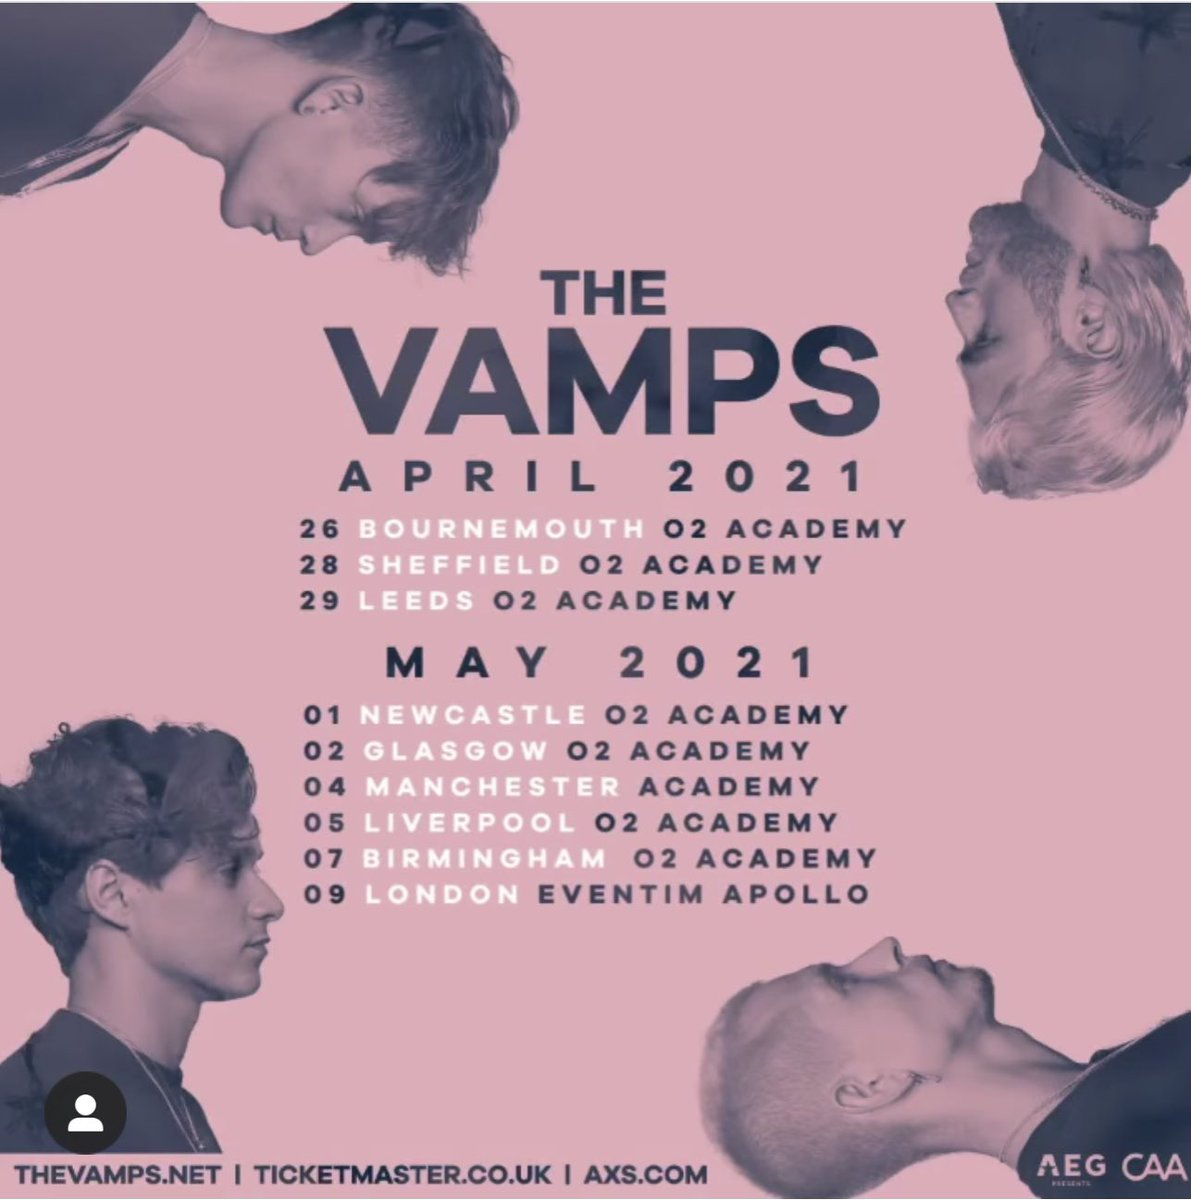 the vamps tour 2021